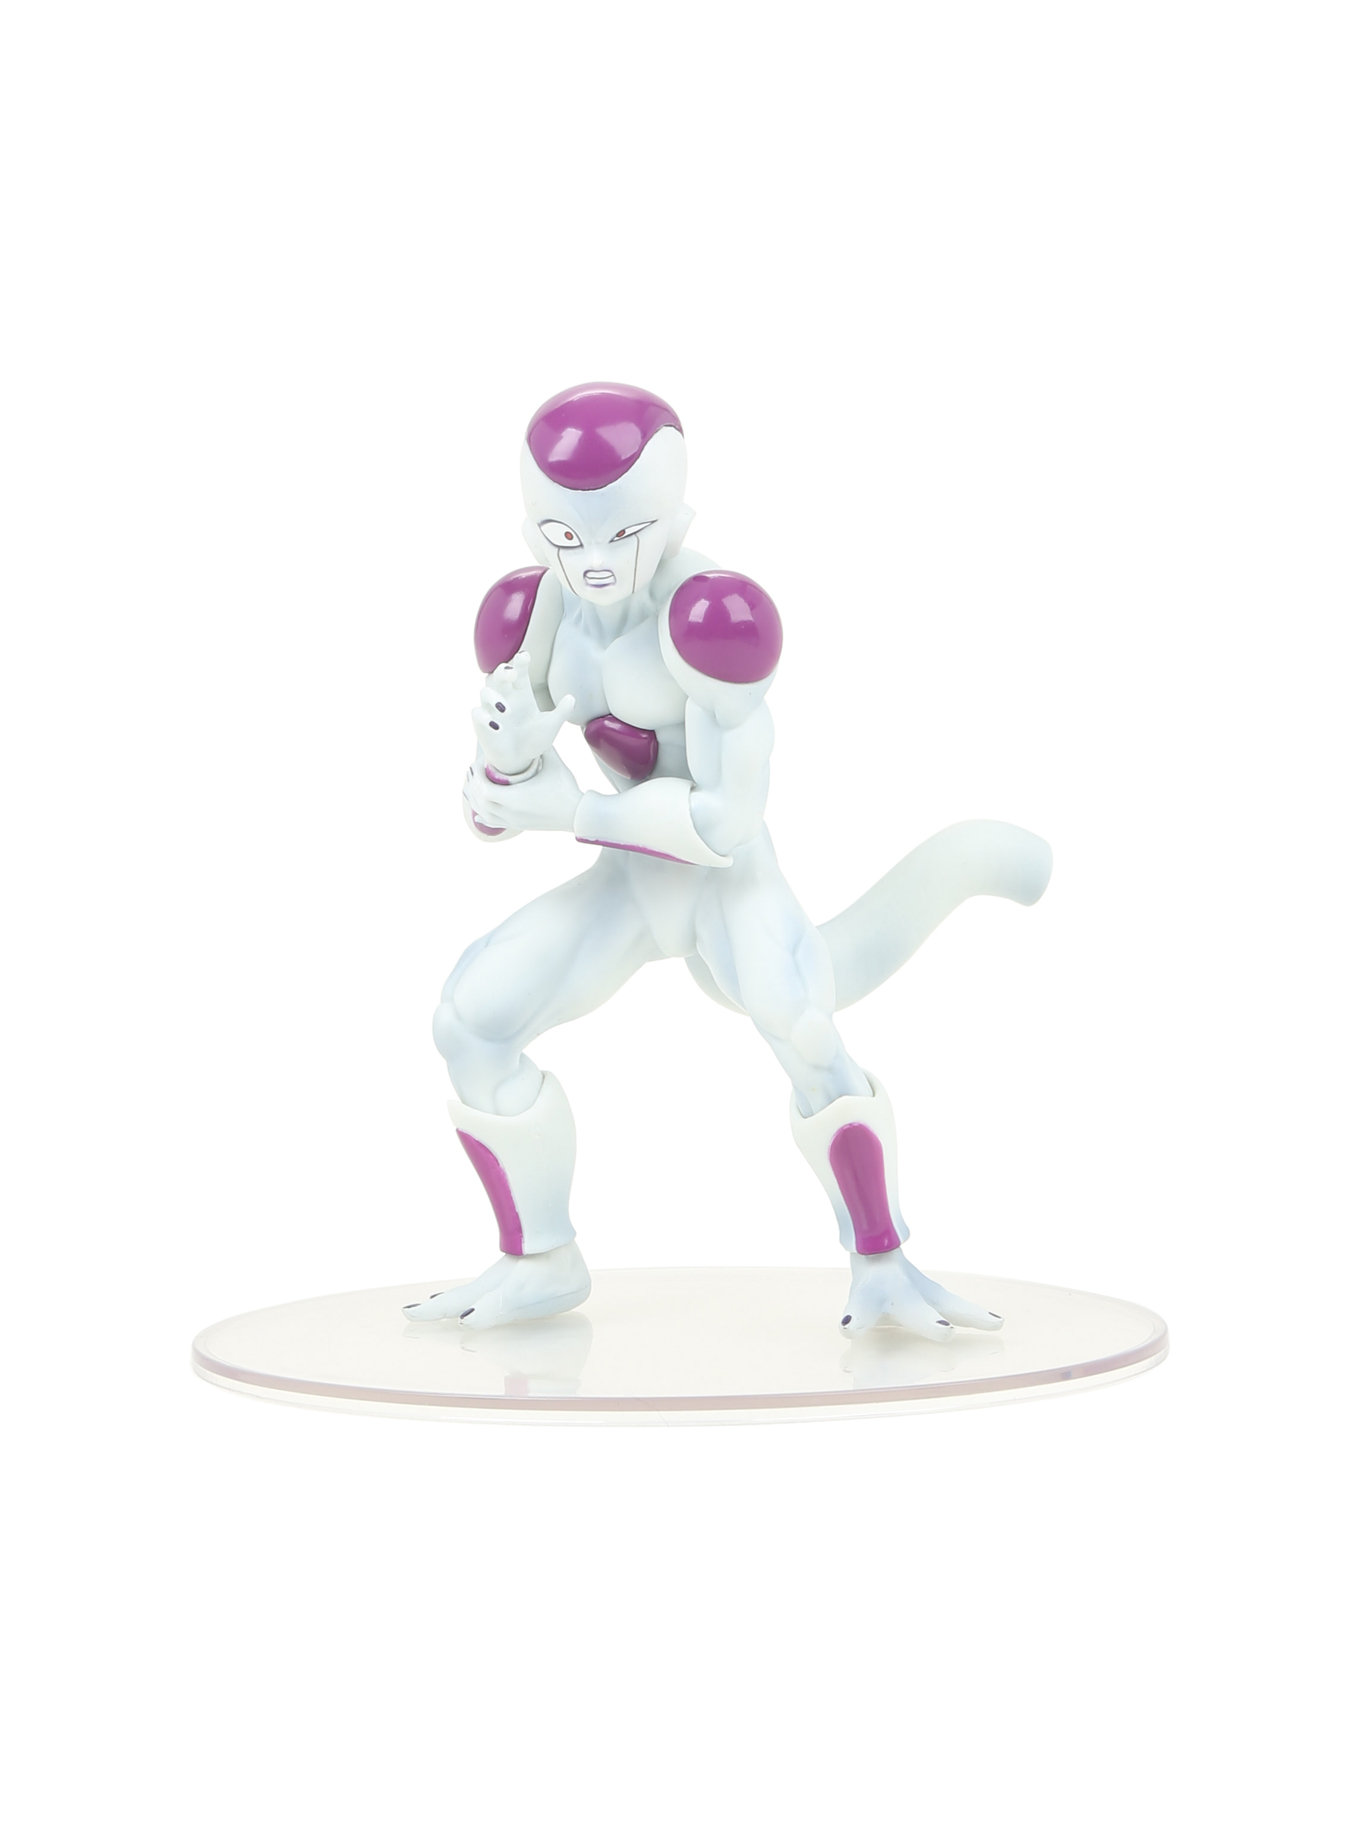 FREEZER 3RD SEASON VOL 2 FIGURA 11,5 CM DRAGON BALL Z DRAMATIC SHOWCASE